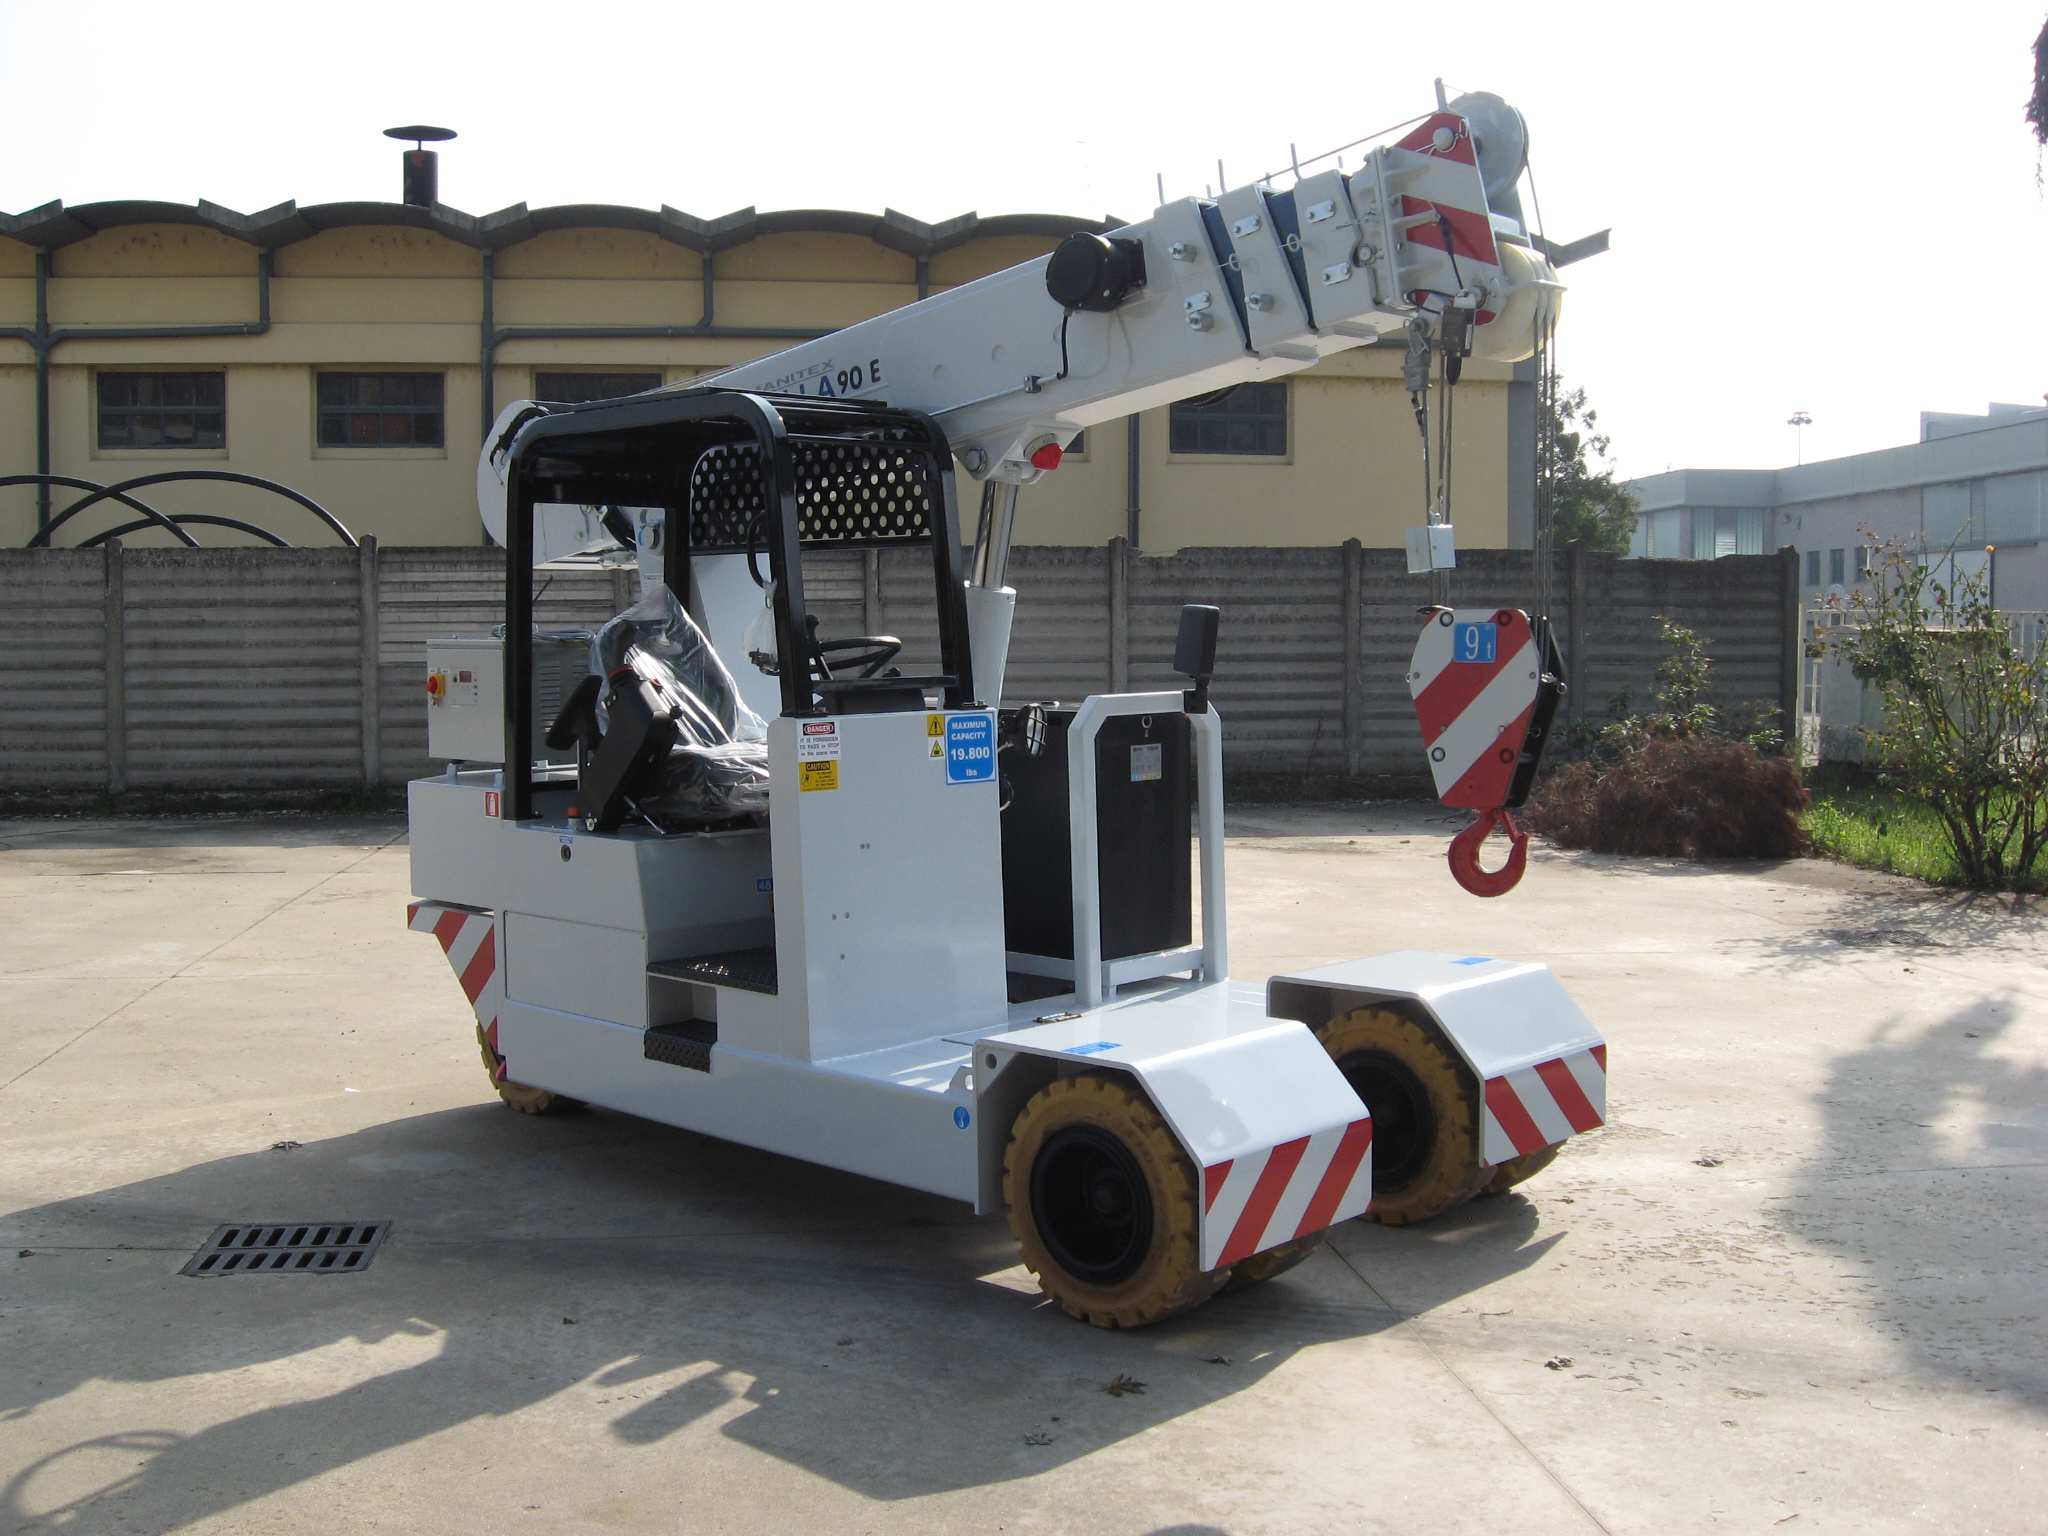 Valla 90E for sale or rent in North America. Electric Pick & Carry 9 mt capacity - 19,800 lb capacity, 21,000 lb total weight. Learn more...